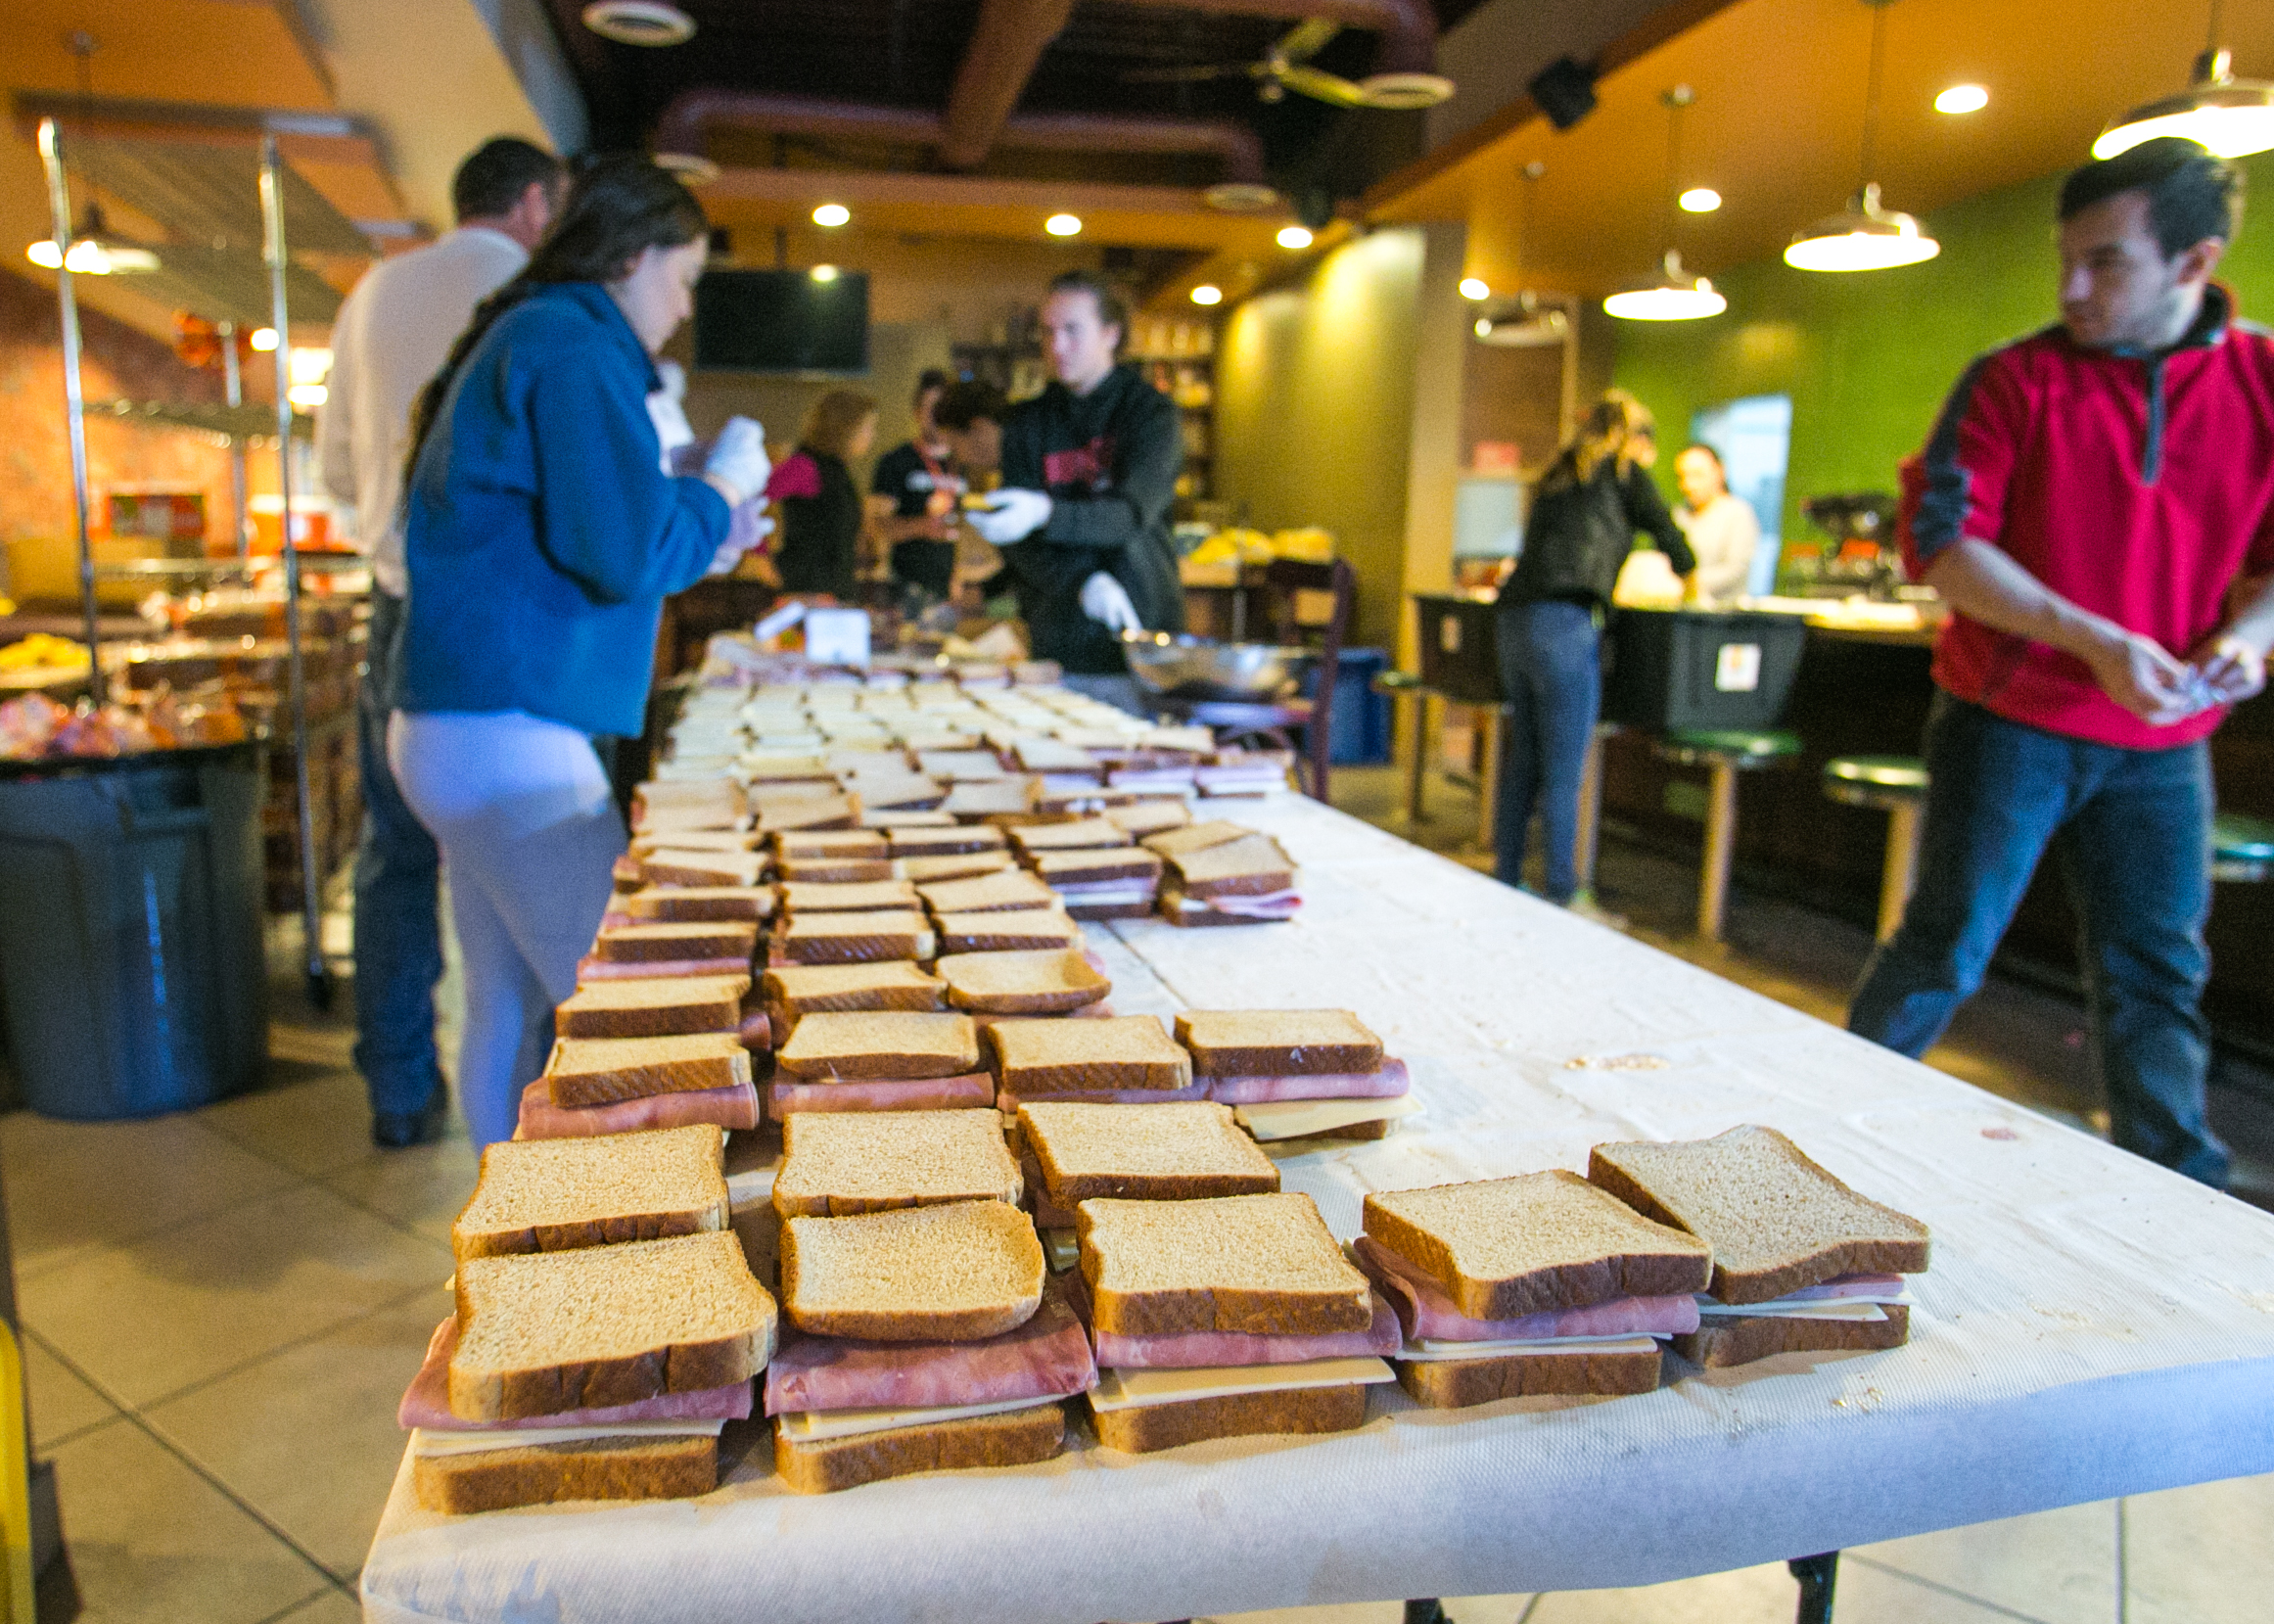 Over 1,200 sandwiches are prepped for lunch by World Central Kitchen volunteers.